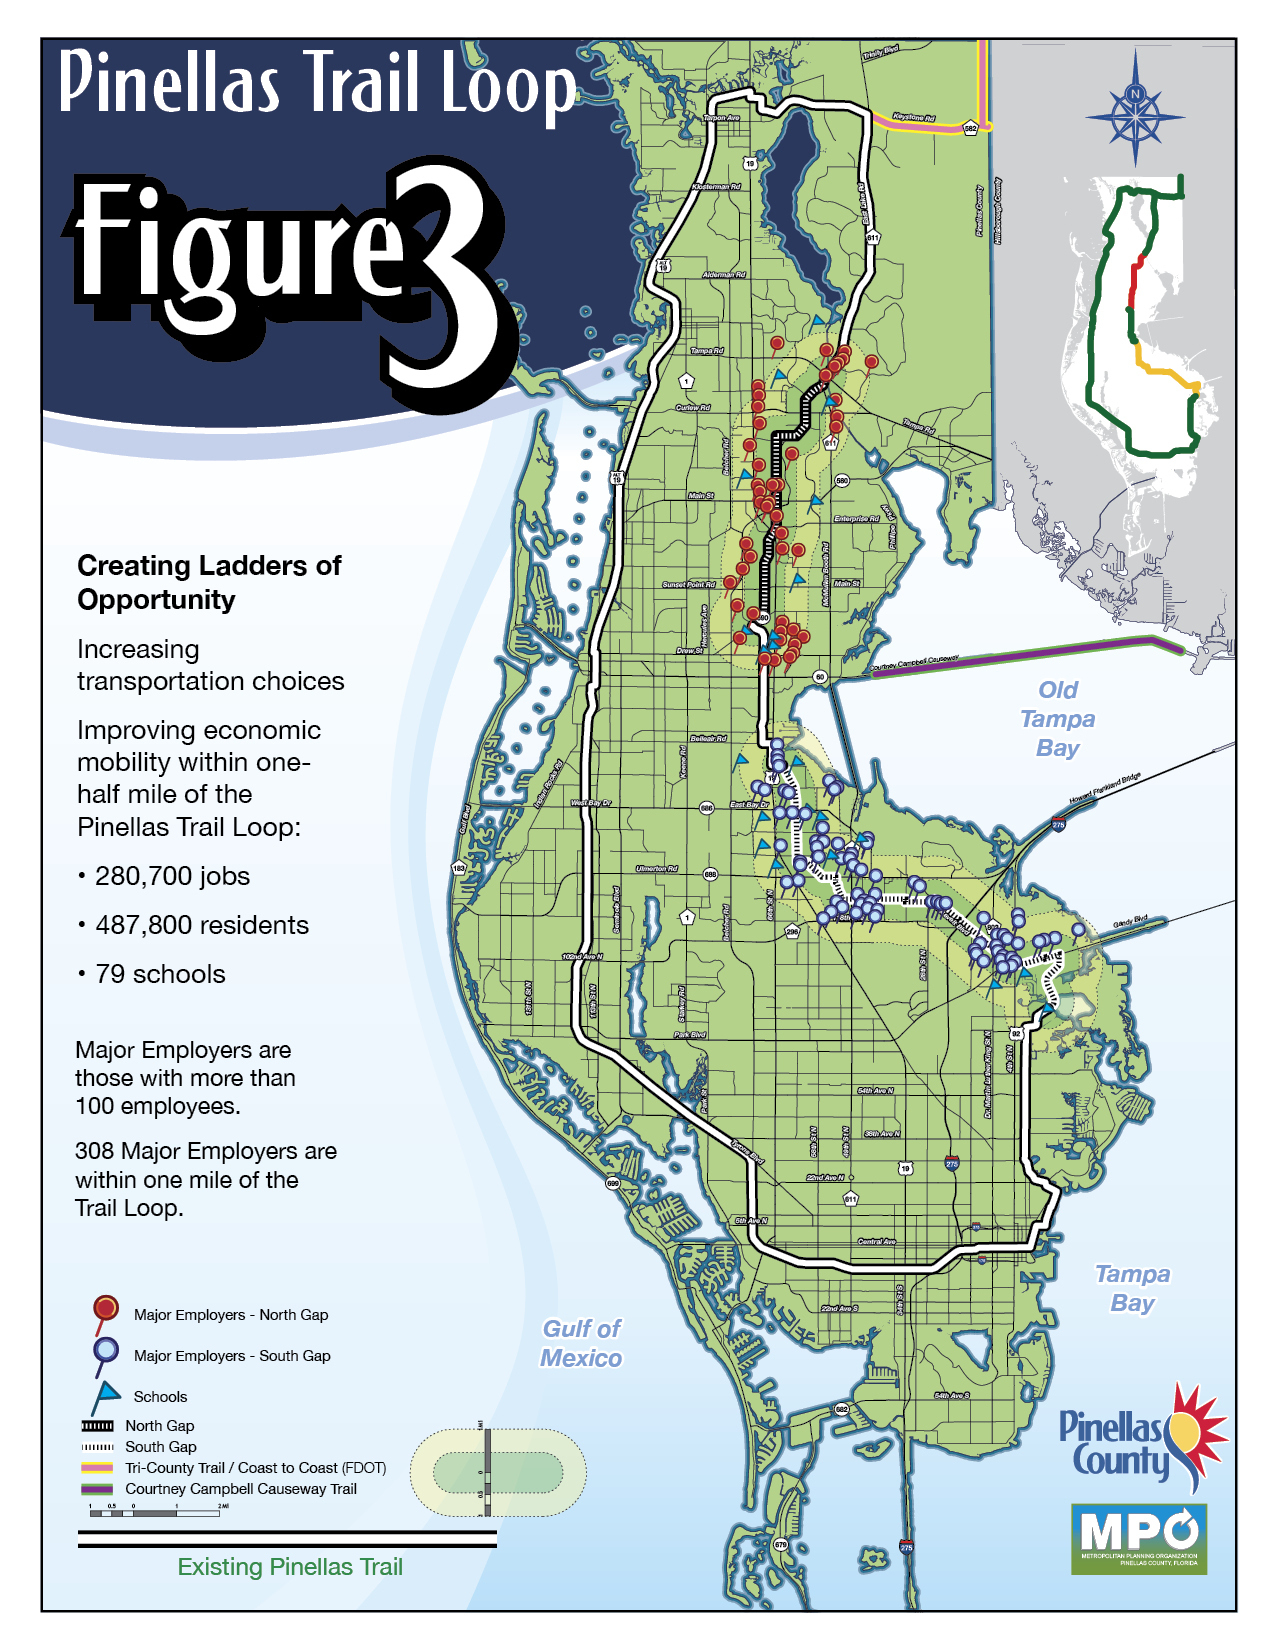 Primary Selection Criteria - Pinellas Trail Map Florida